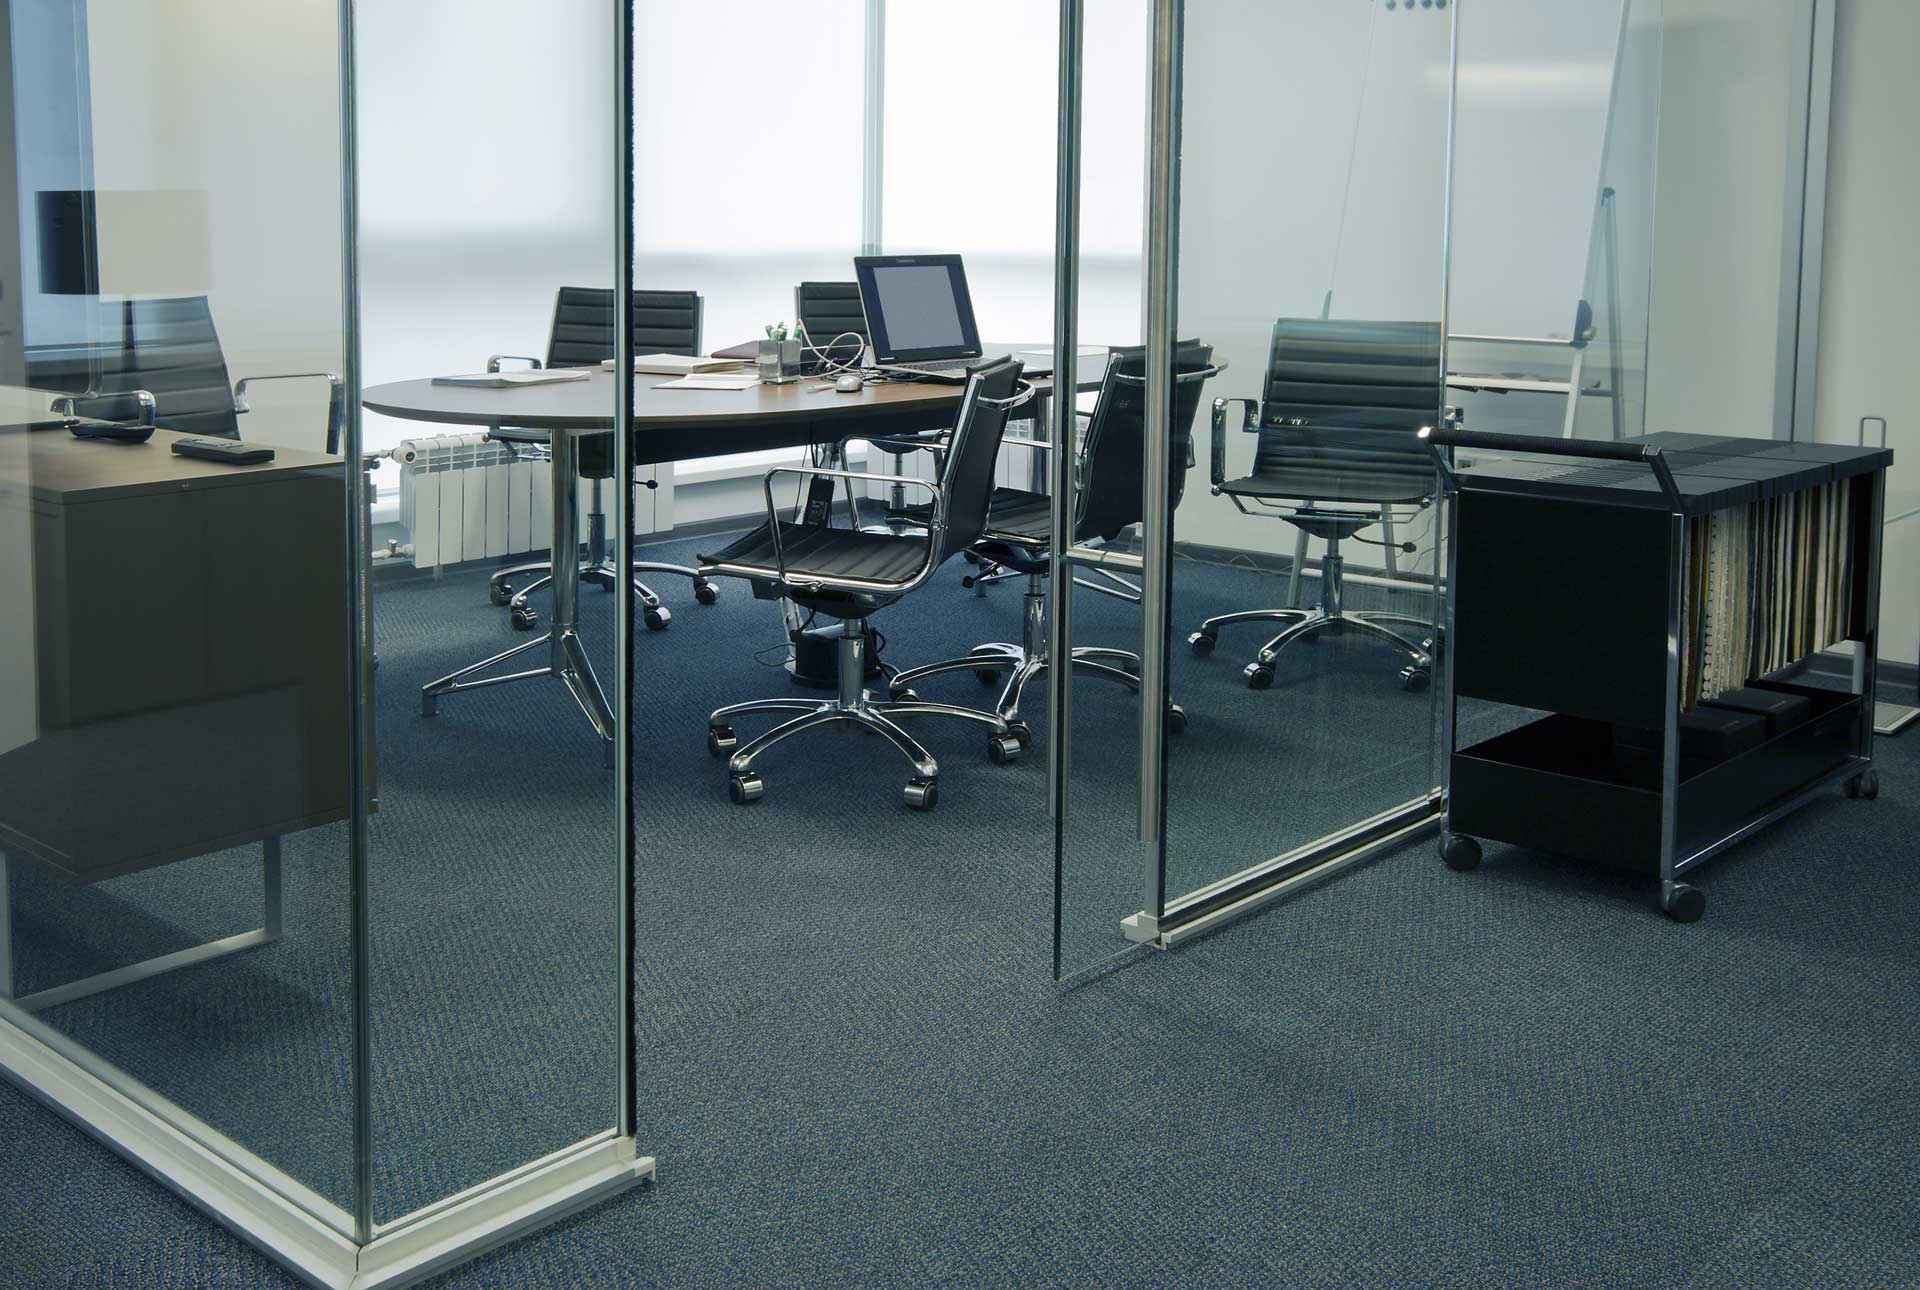 Image of Office carpet cleaning professionals at Carpet Keepers